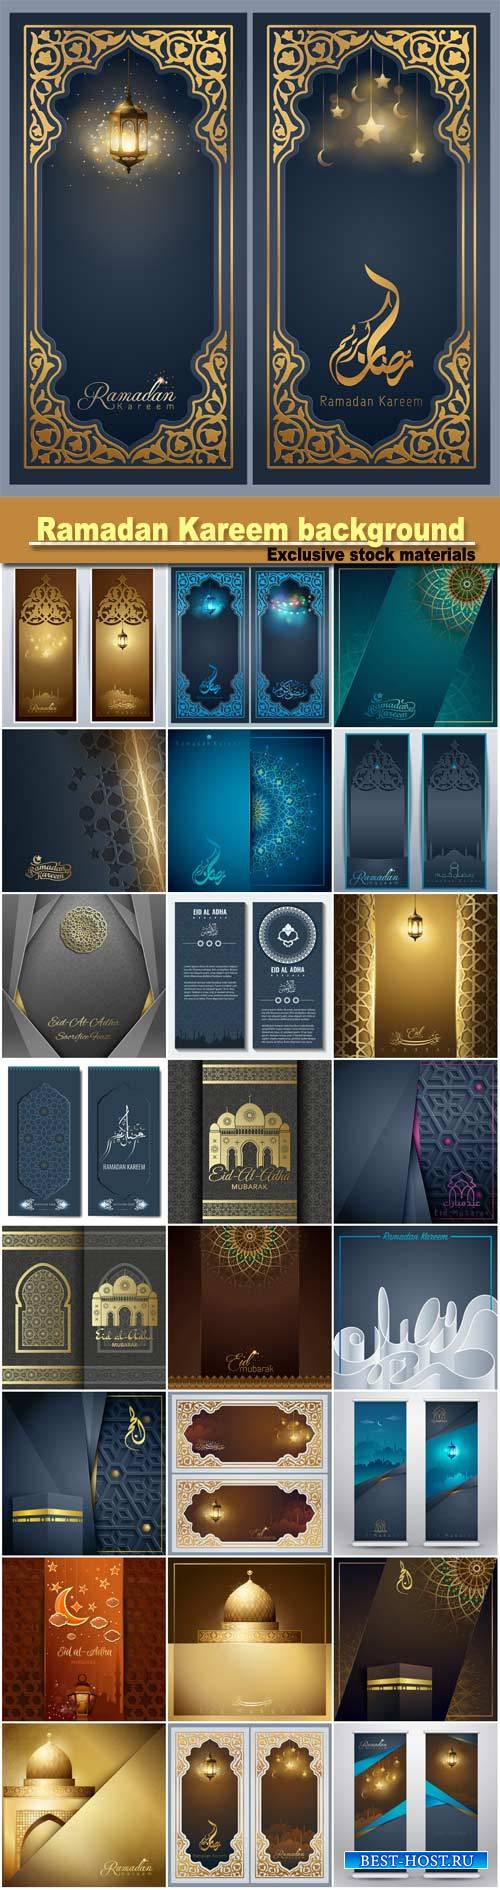 Ramadan Kareem greeting banner background template for islamic festival des ...